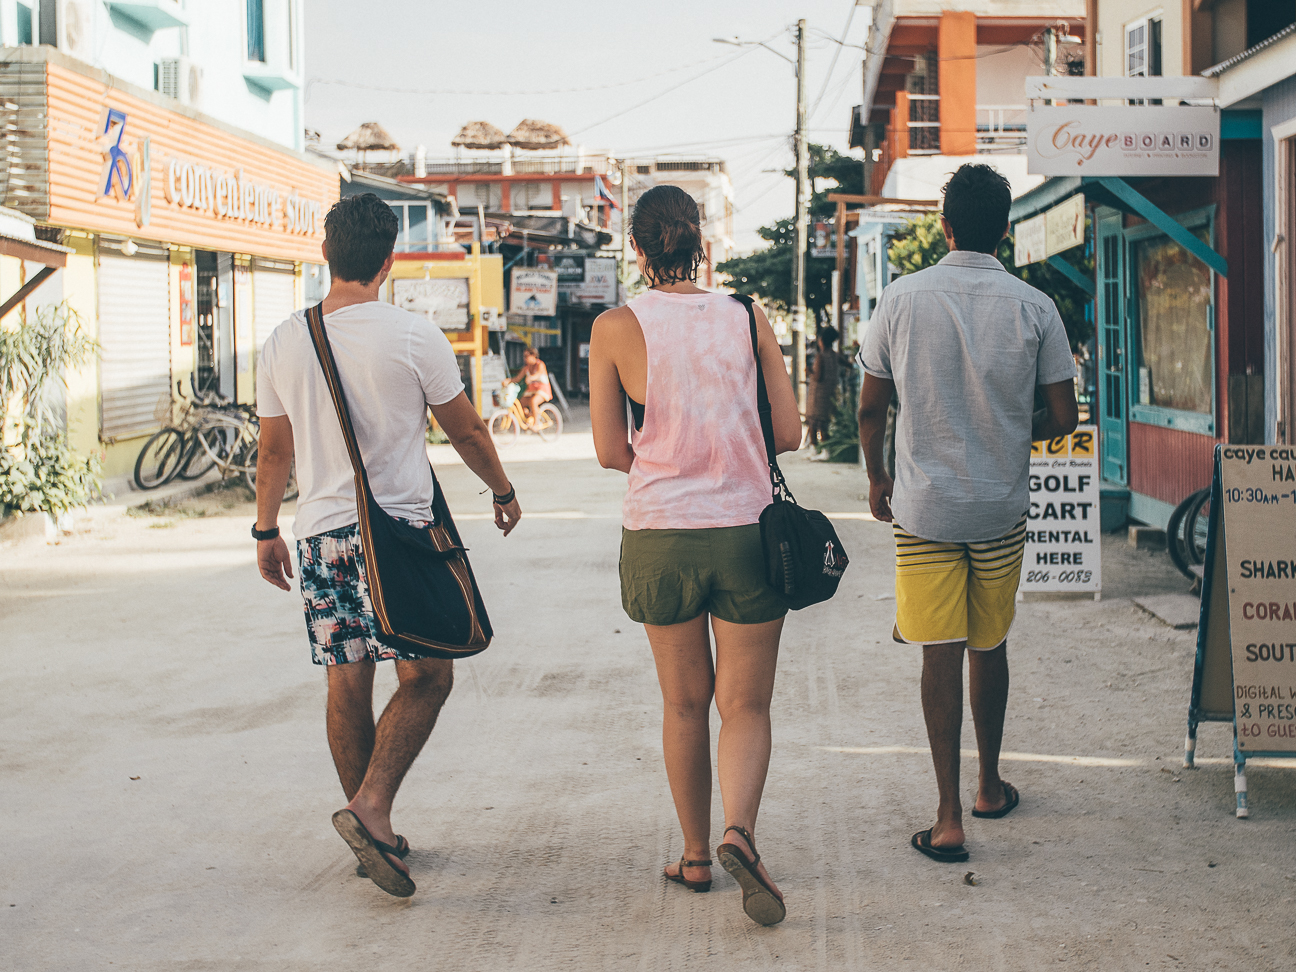 exploring the island of Caye Caulker on foot, after a dip into the ocean at the Split